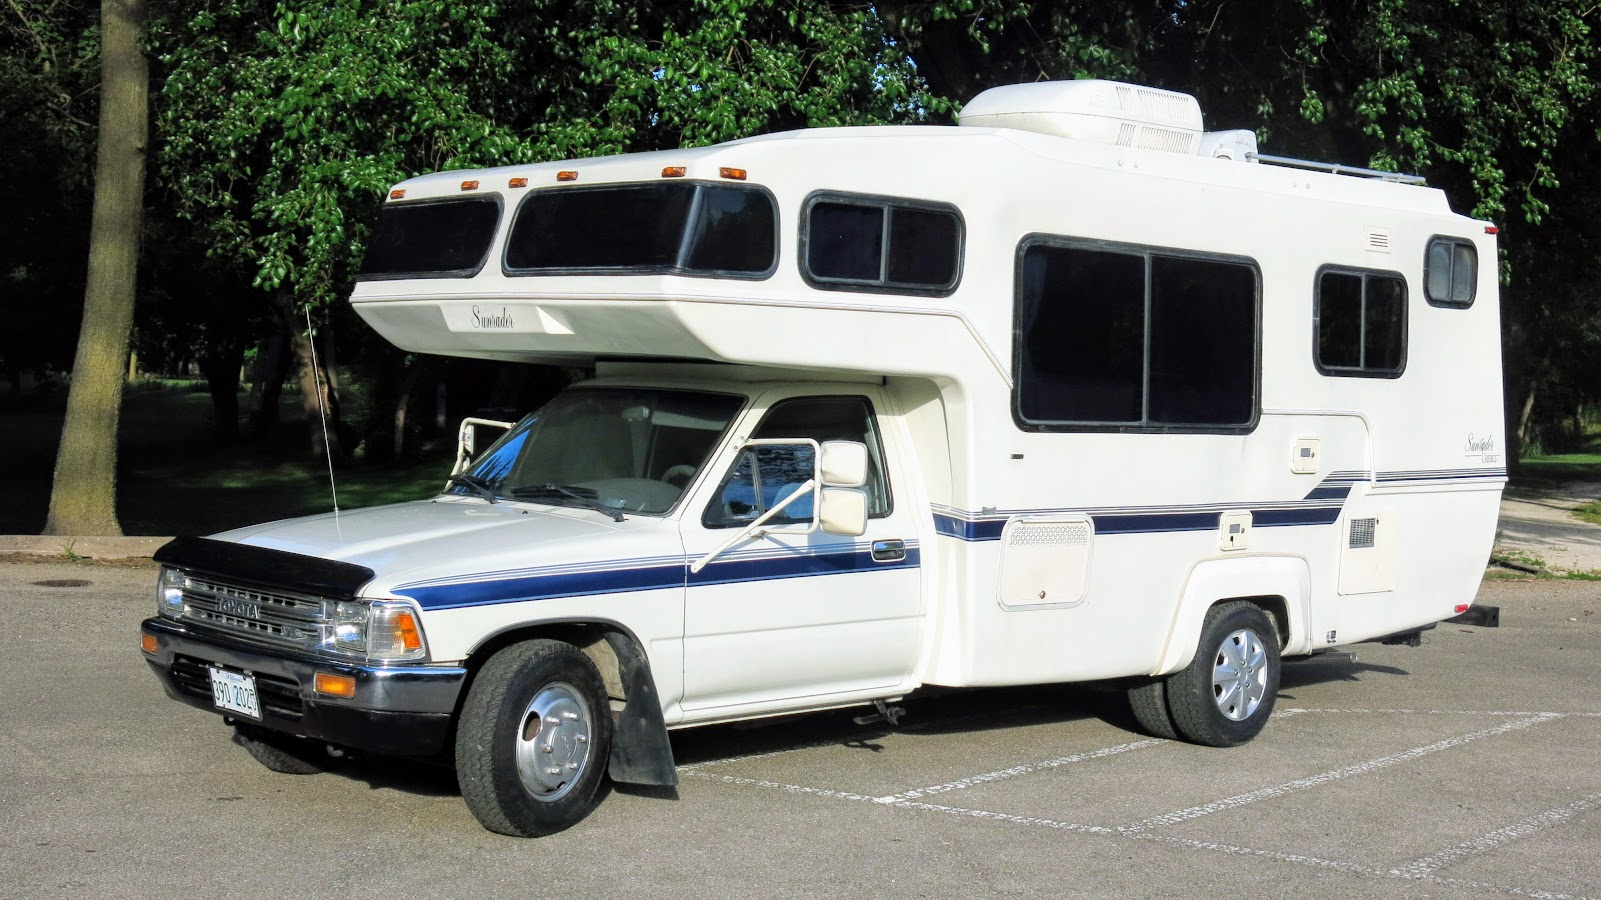 Motorhomes For Sale By Owner >> 1990 Toyota Sunrader 21 FT V6 Auto Motorhome For Sale in Morris, IL